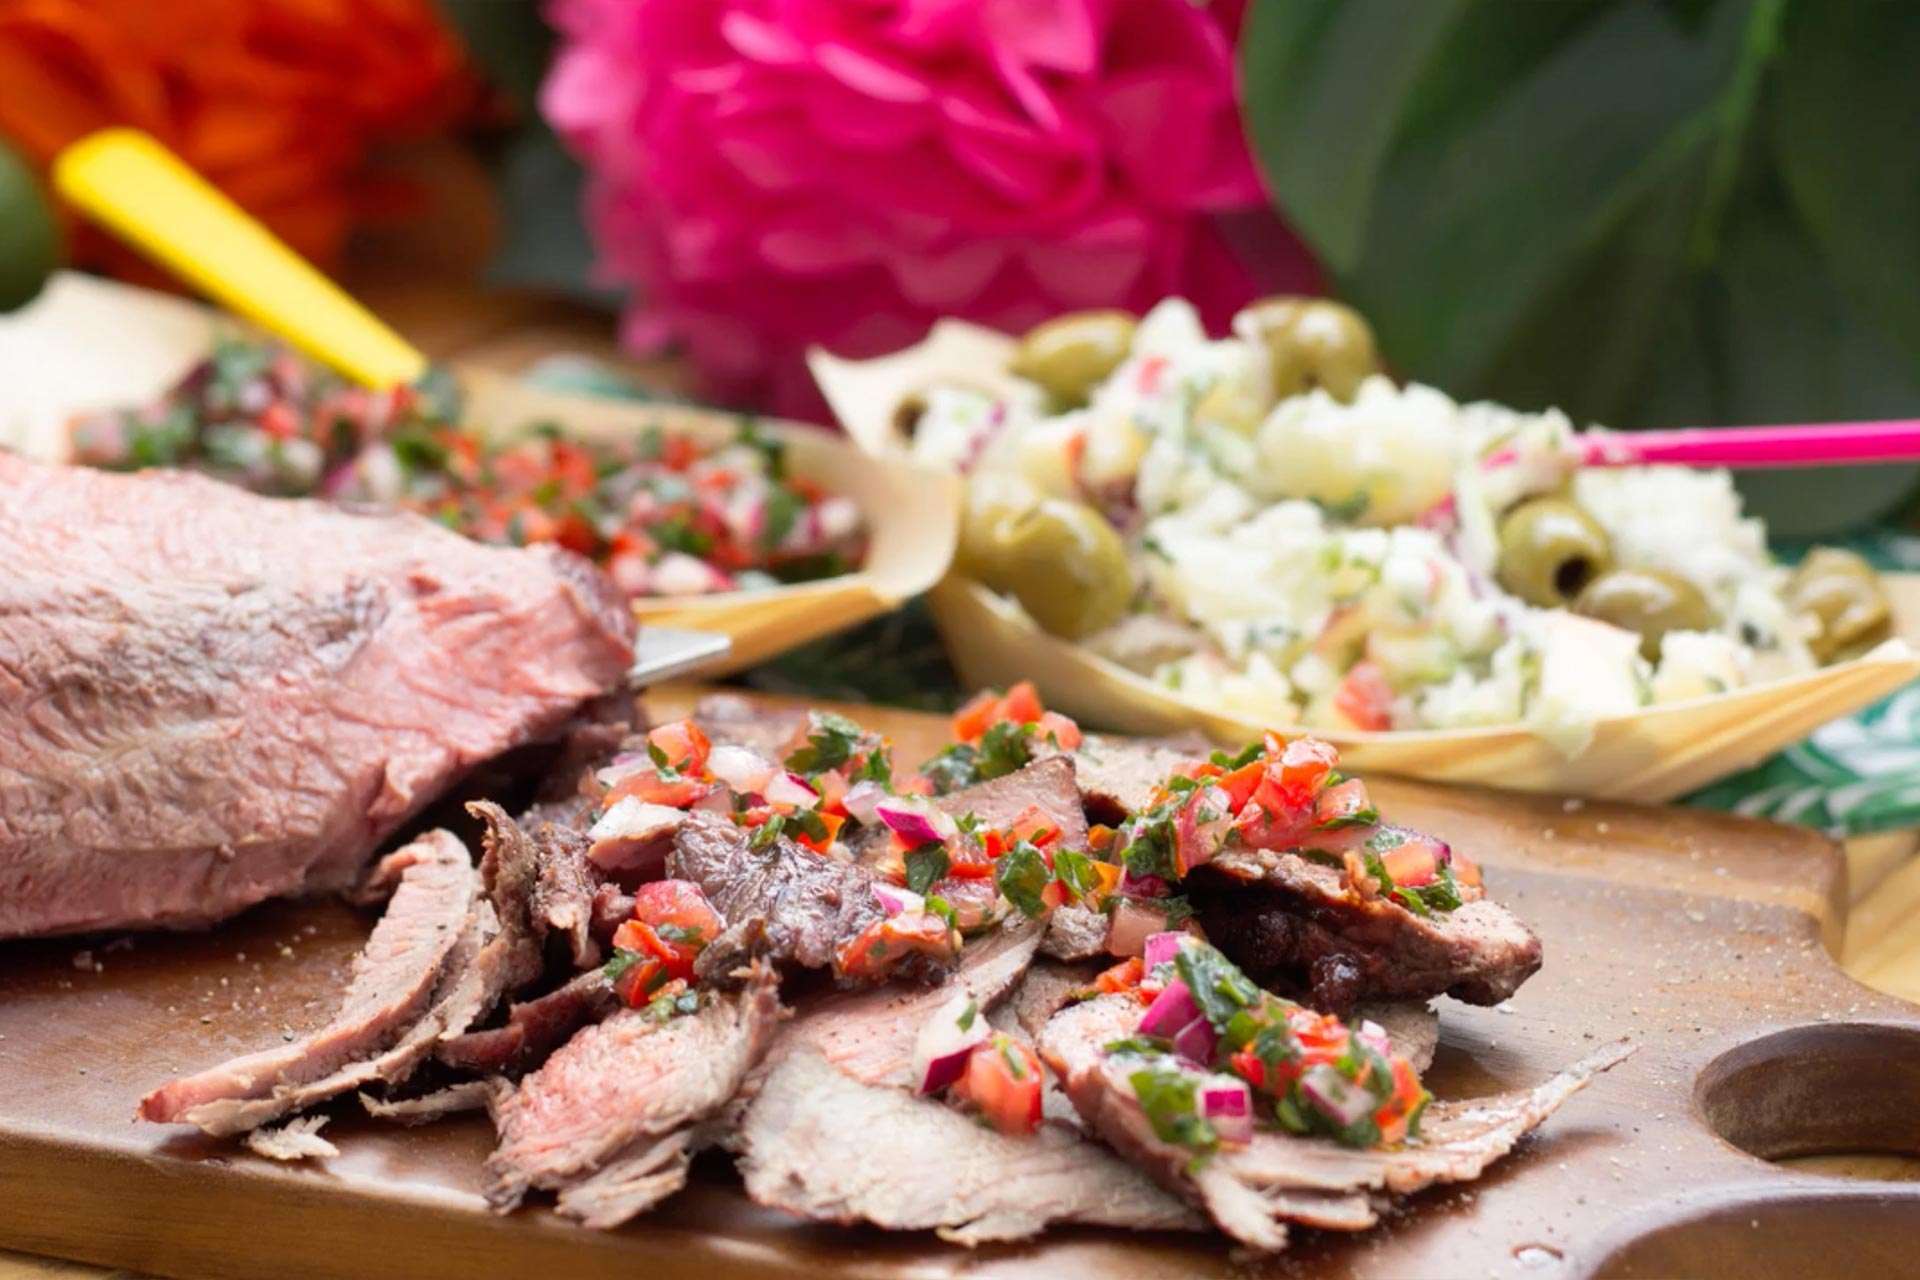 Brazilian-Style Barbecue Recipe with Potato Salad